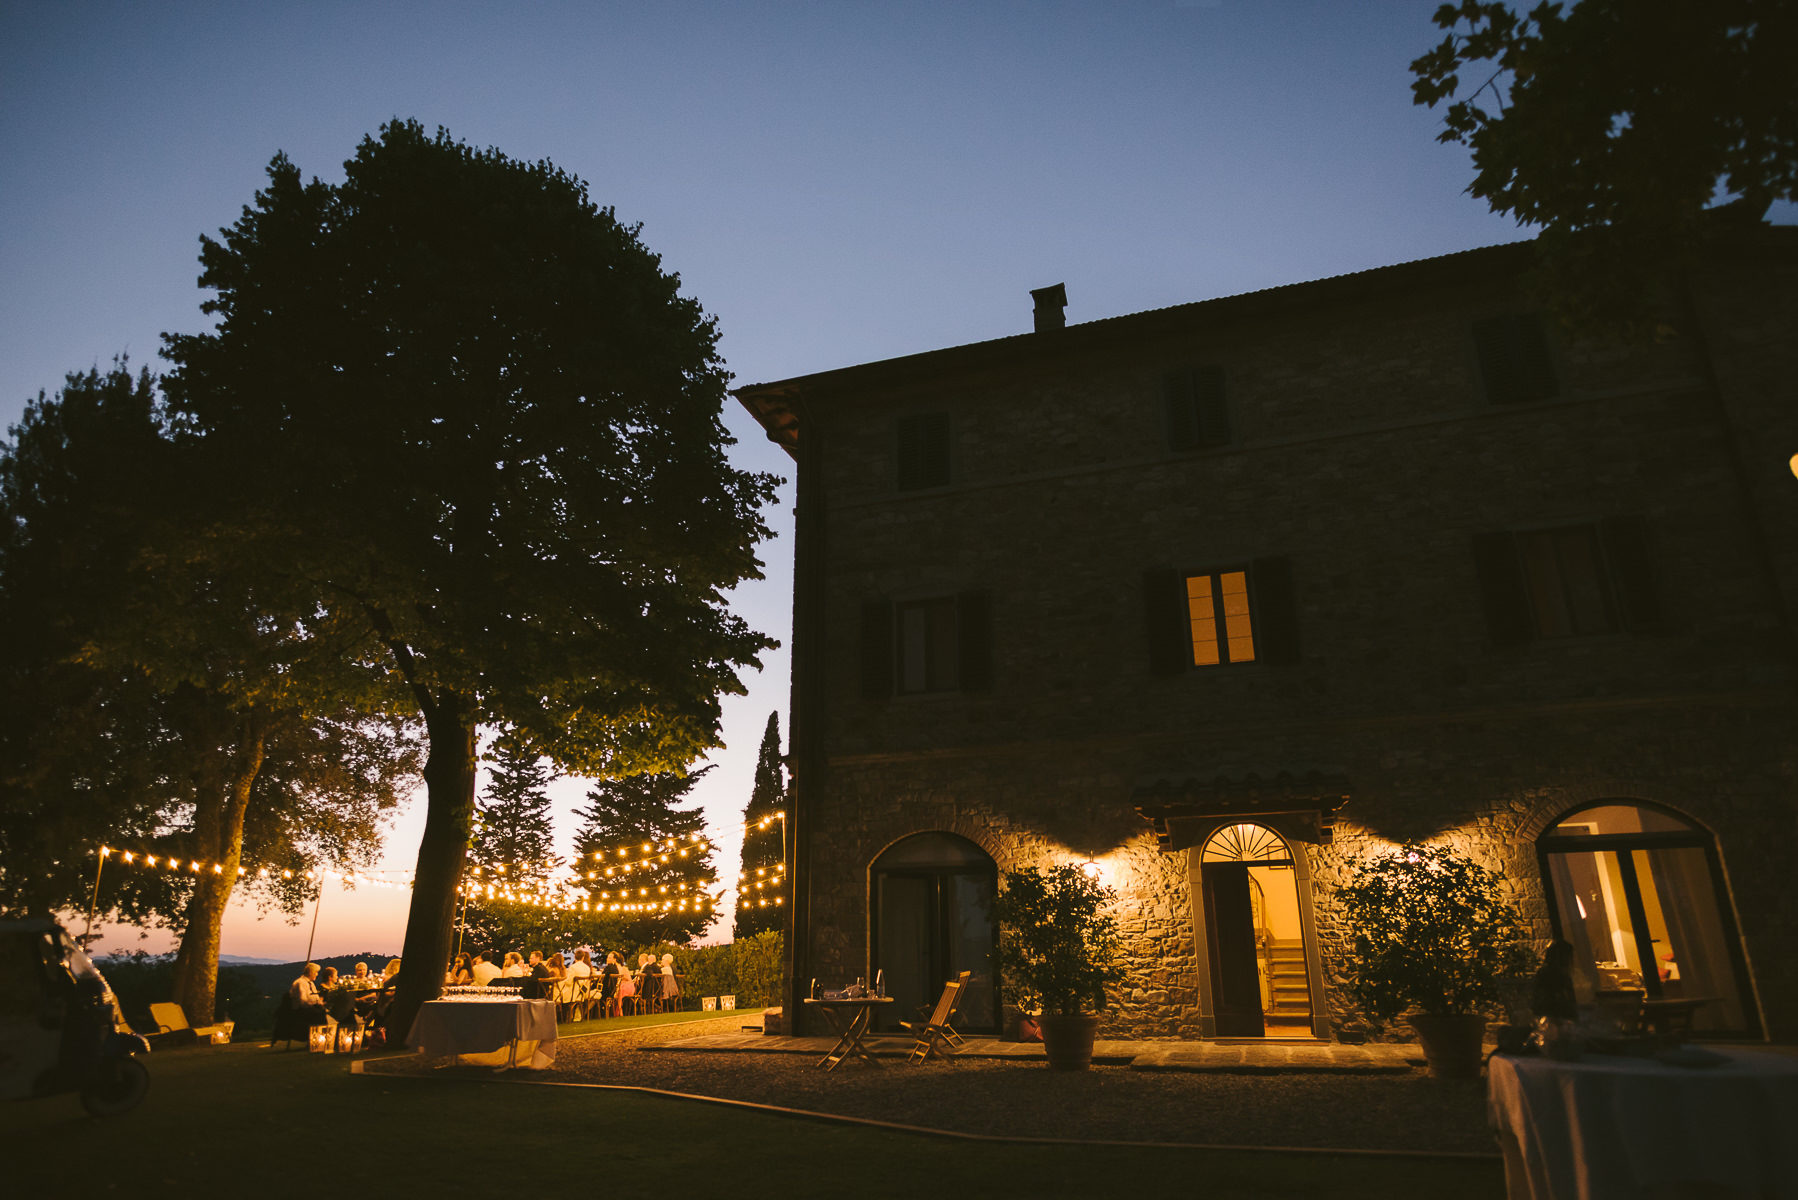 Unforgettable wedding dinner under lovely lights in Tuscany countryside in Chianti near Panzano